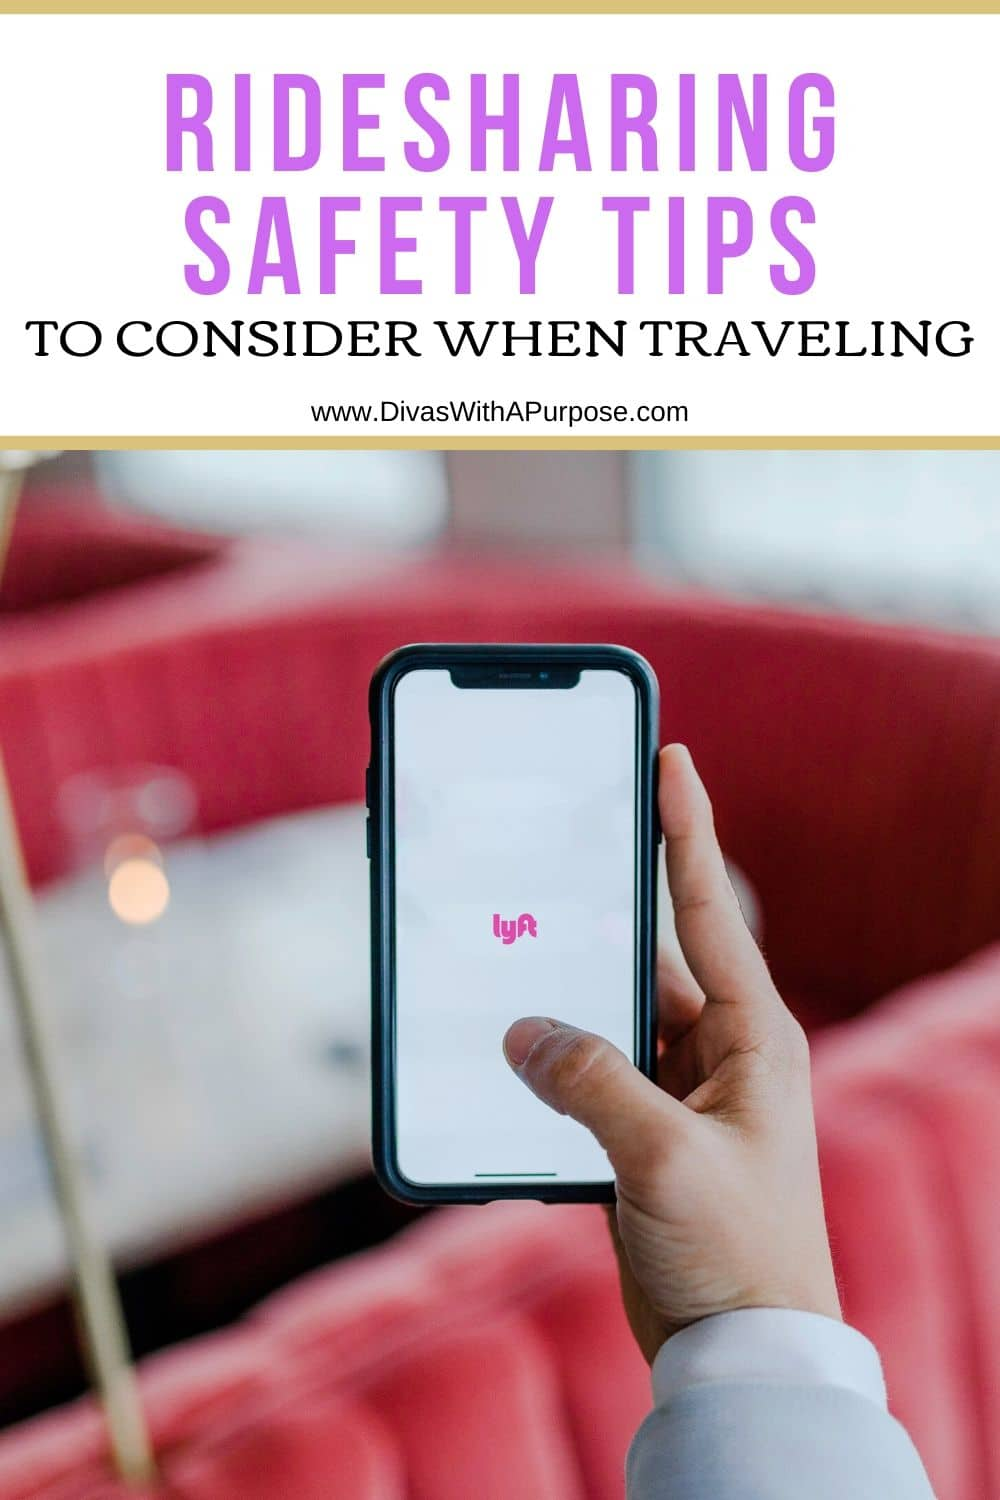 Ridesharing Safety Tips to consider when traveling